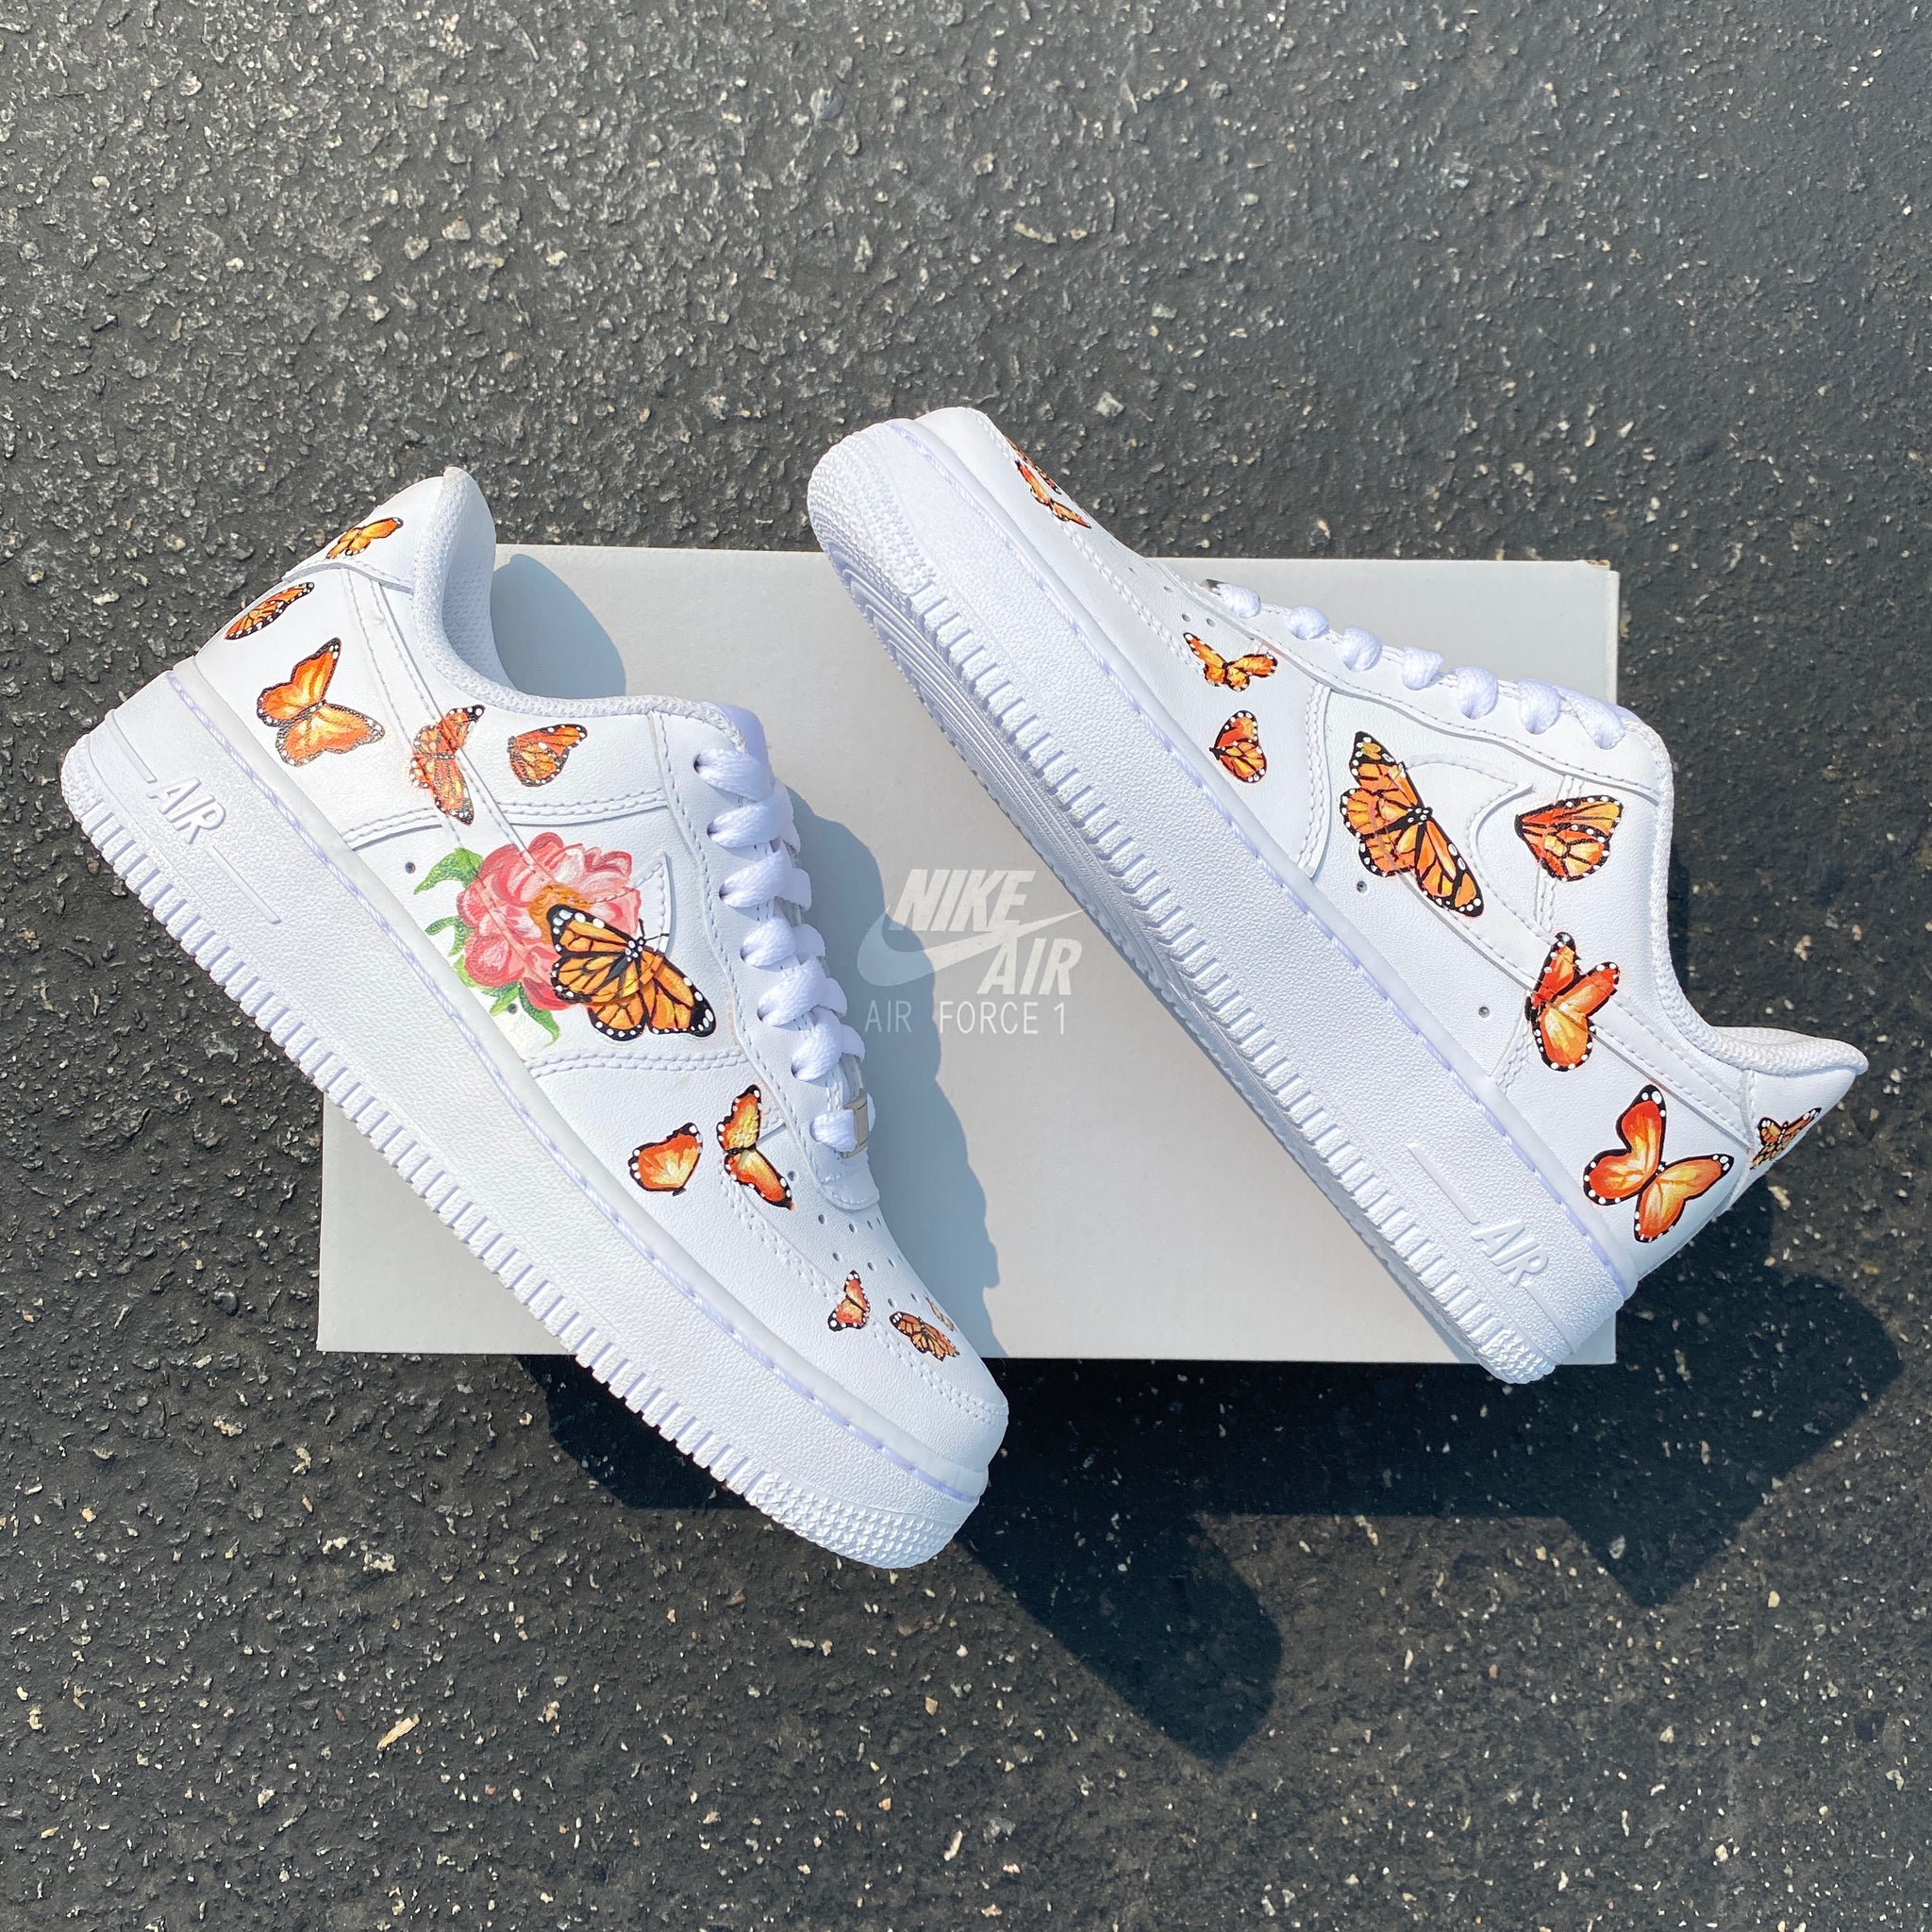 nike air force butterfly shoes